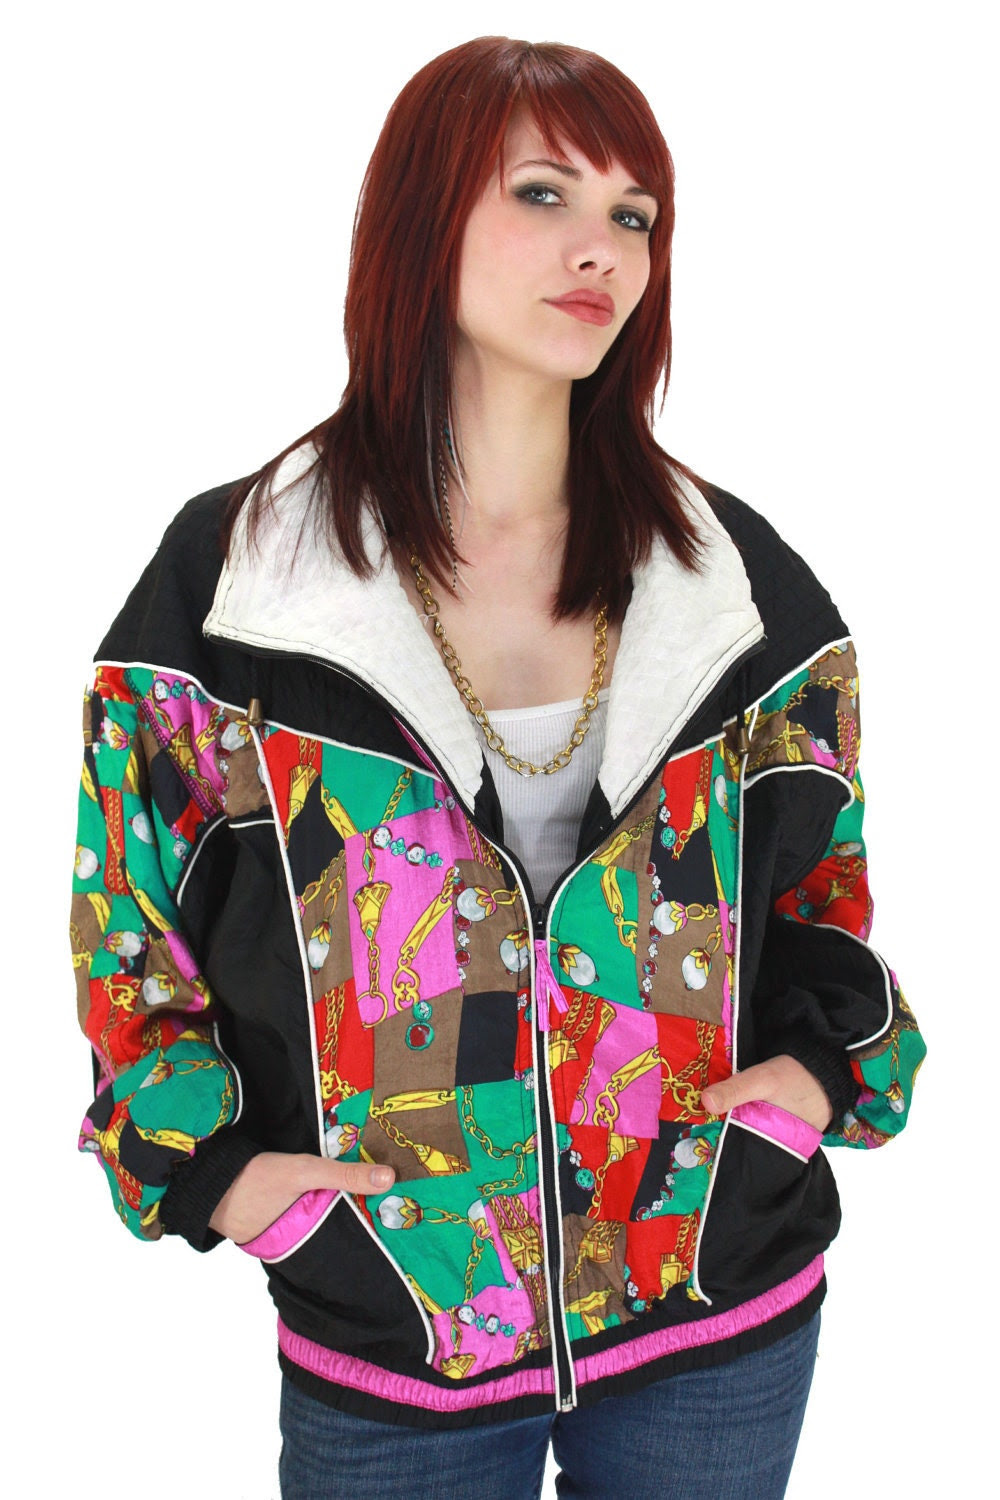 90s Neon Windbreaker Gold Chain Jacket Hip Hop 1990s Vintage Quilted Details Pucci Scarf Chain Print L XL Large XLarge